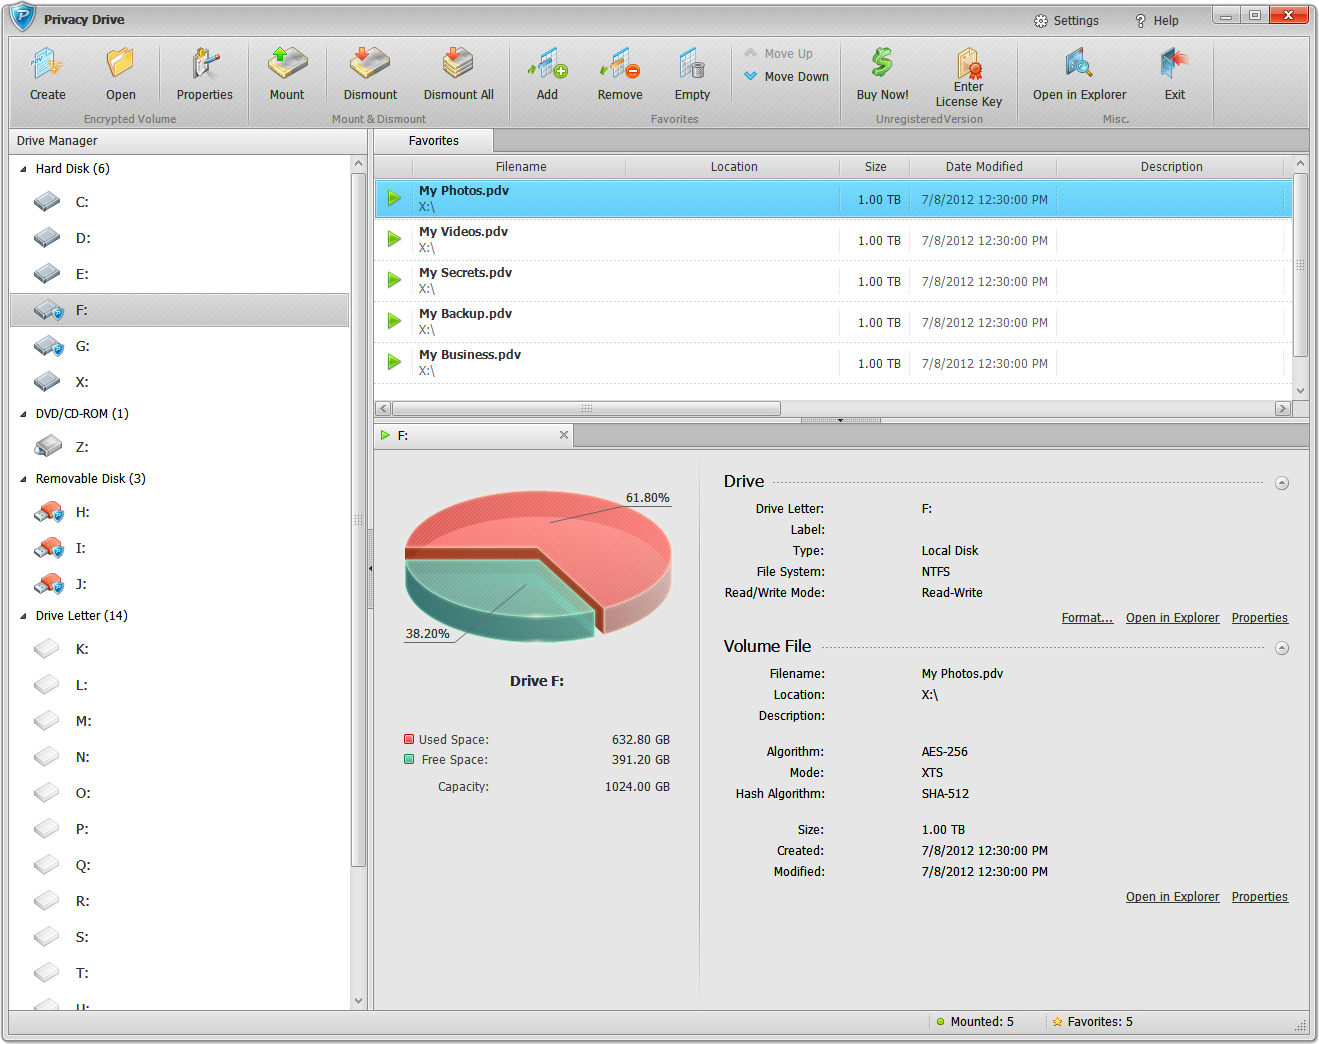 Privacy Drive, Security Software Screenshot